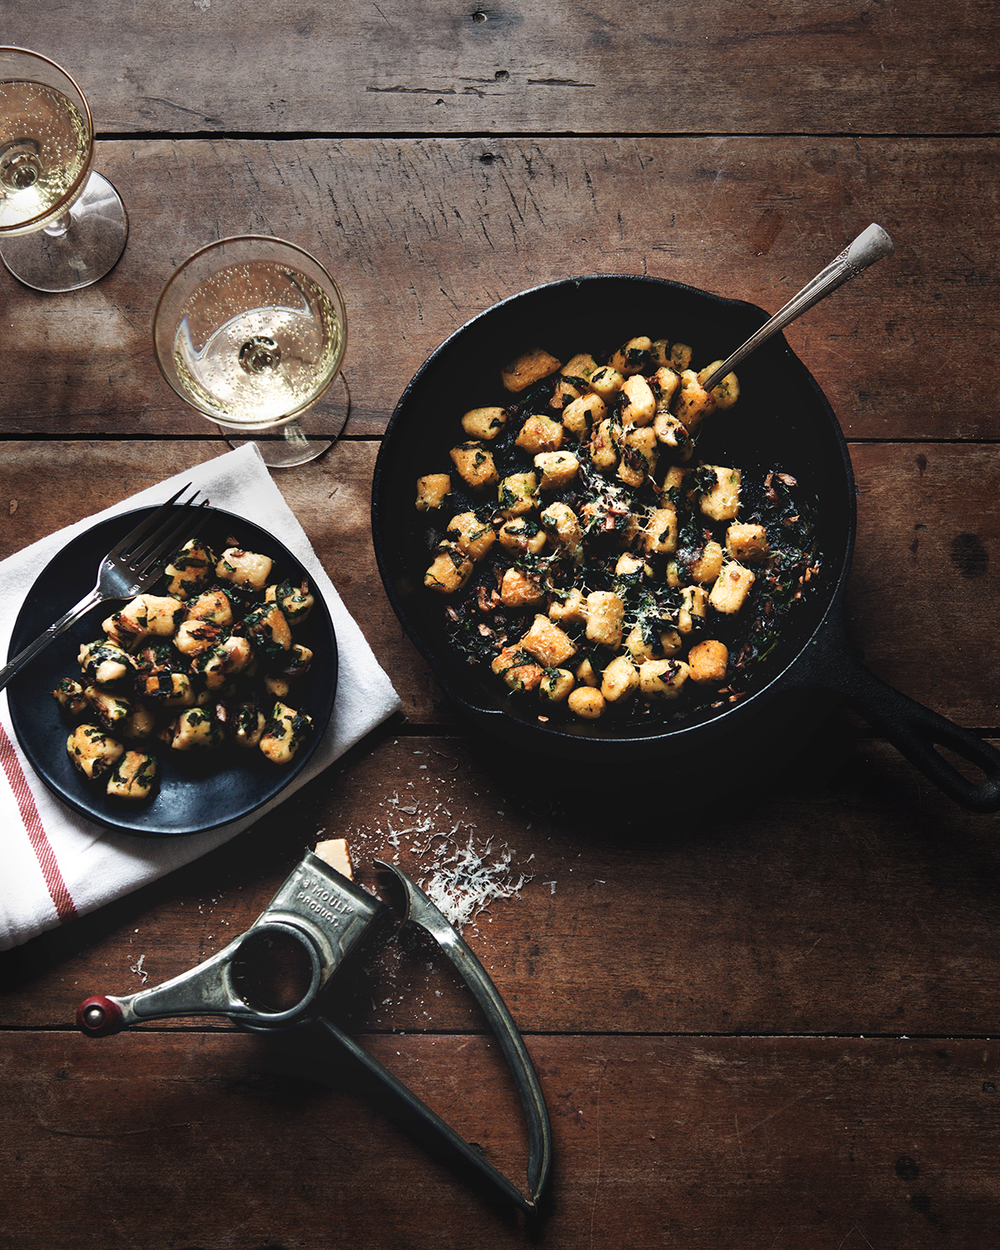 Parisian Gnocchi with Chard and Mushrooms